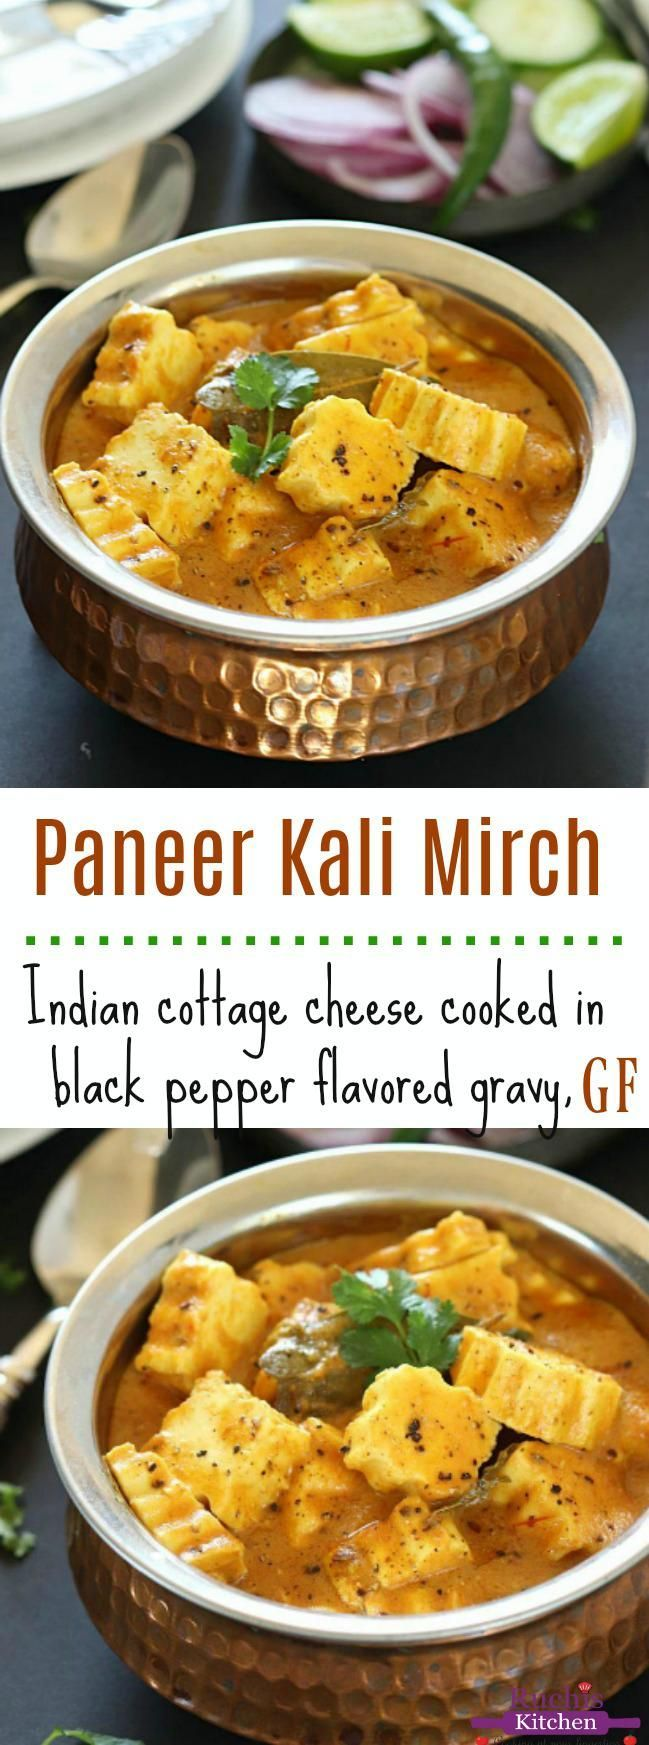 Paneer Kali Mirch is a spicy yet delicious gluten-free dish made with aromatic spices. Pair it with homemade warm rotis or white rice to create a yummy wholesome meal tonight! #paneer #blackpepperpaneer #glutenfreedishes #paneerrecipe #indianpaneer #paneermeal